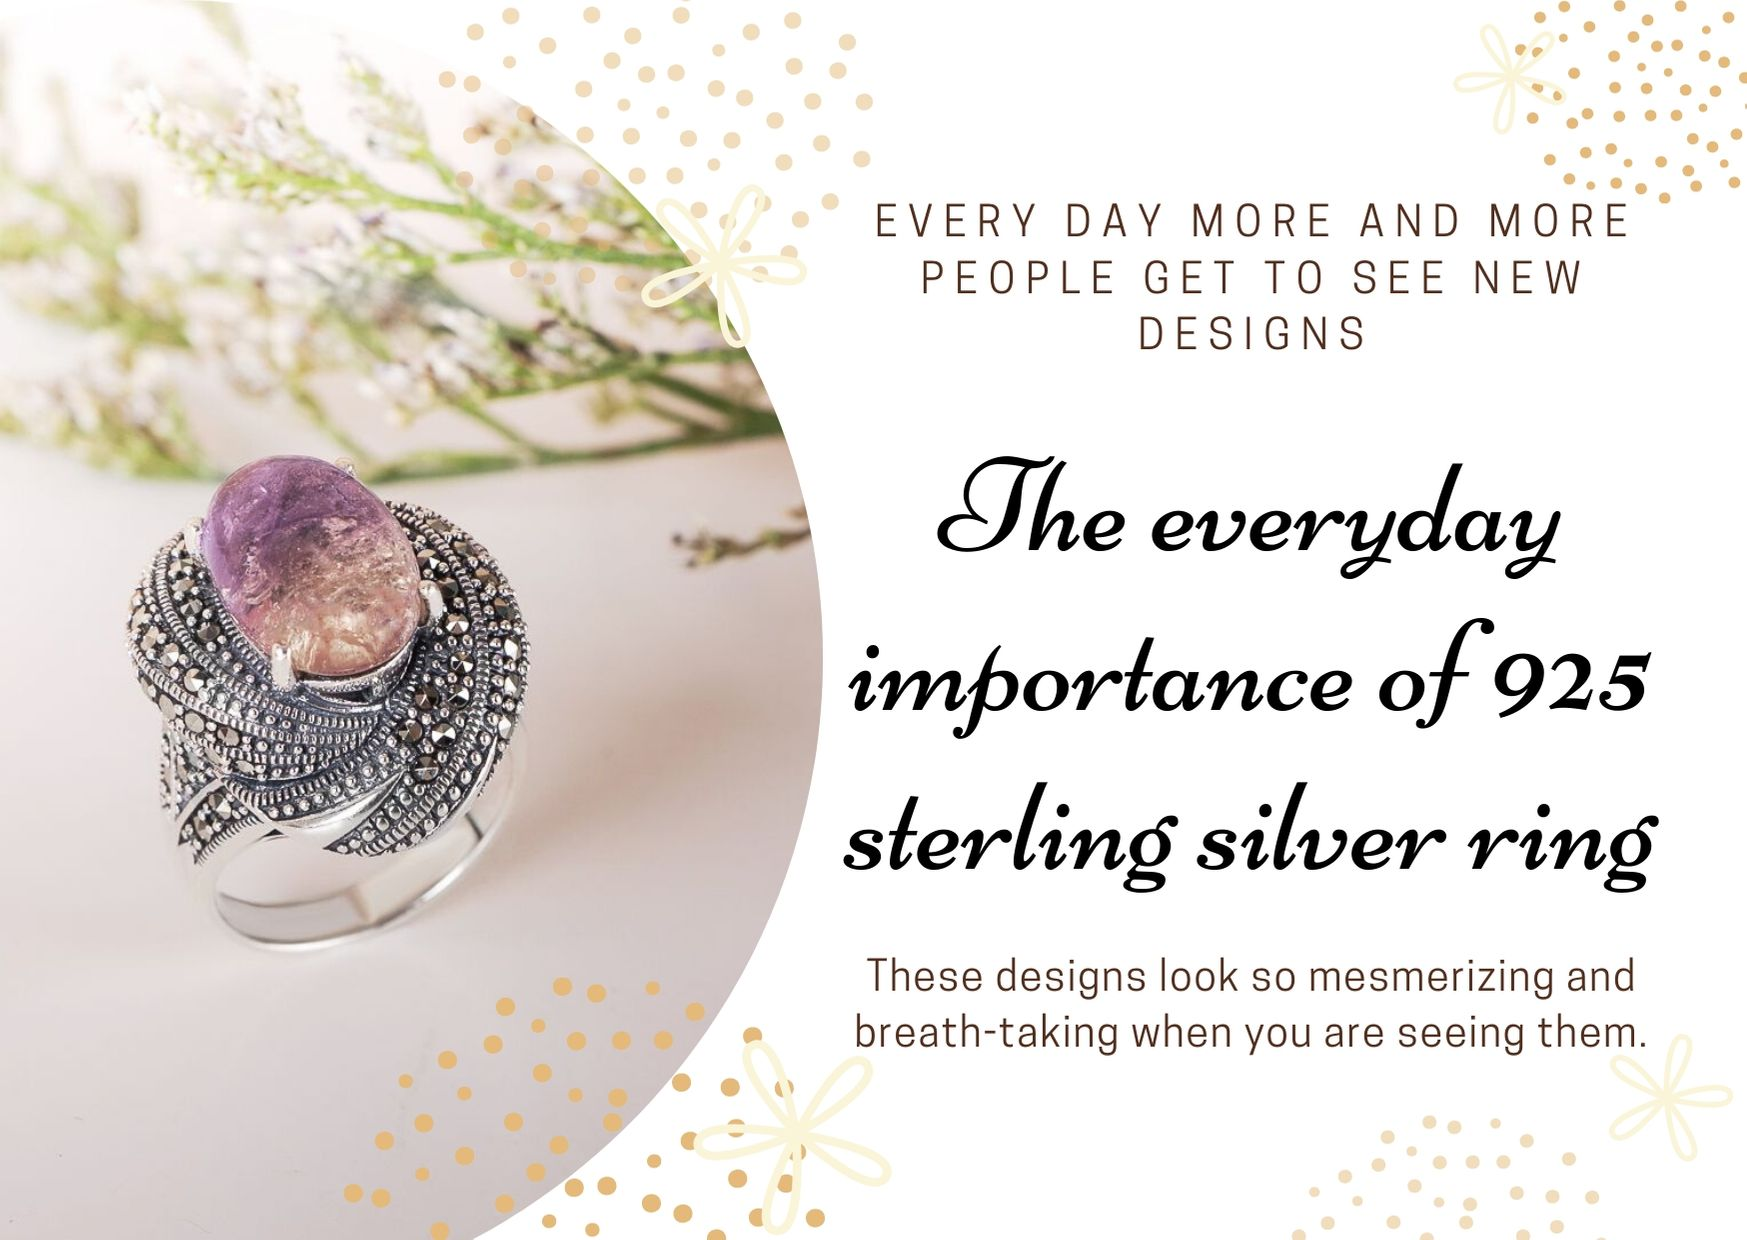 The everyday importance of 925 sterling silver ring